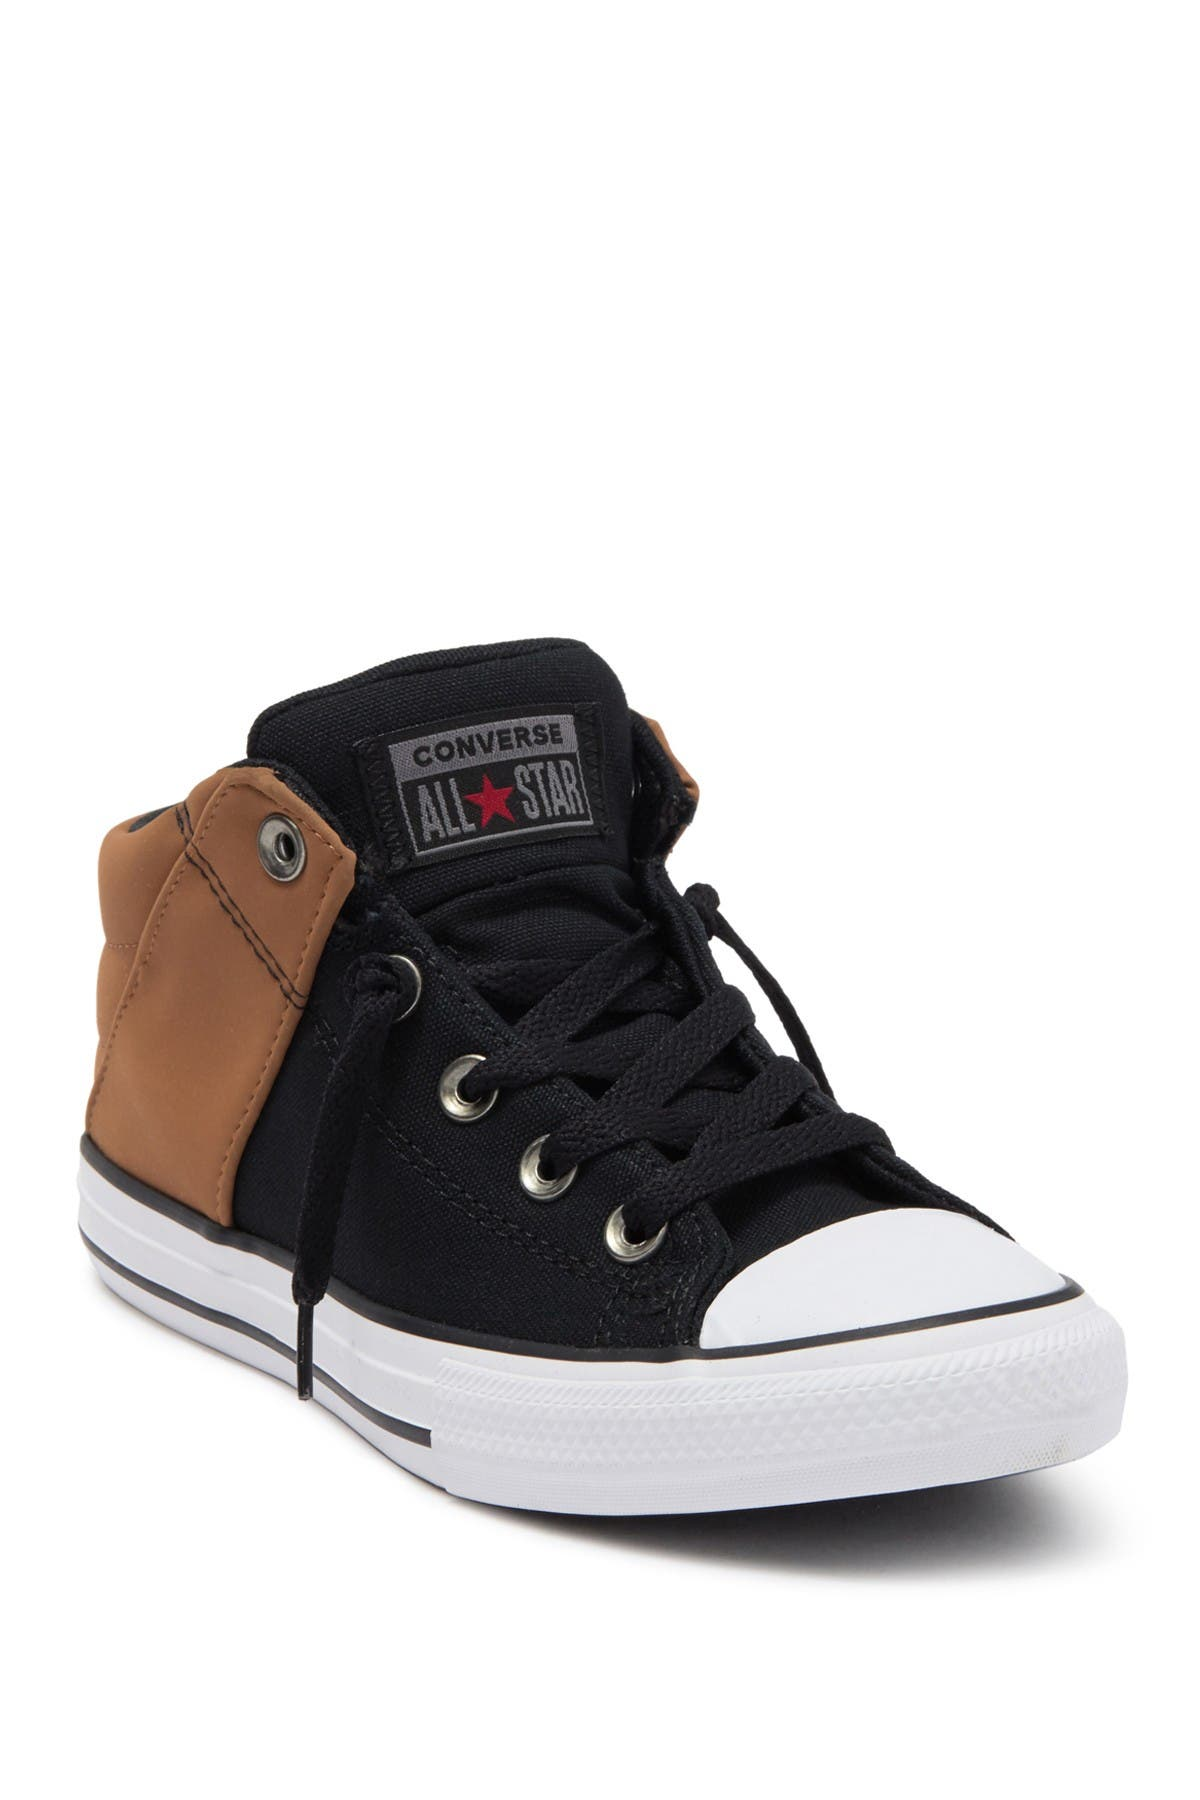 Image of Converse Chuck Taylor All Star Axel Mid Sneaker